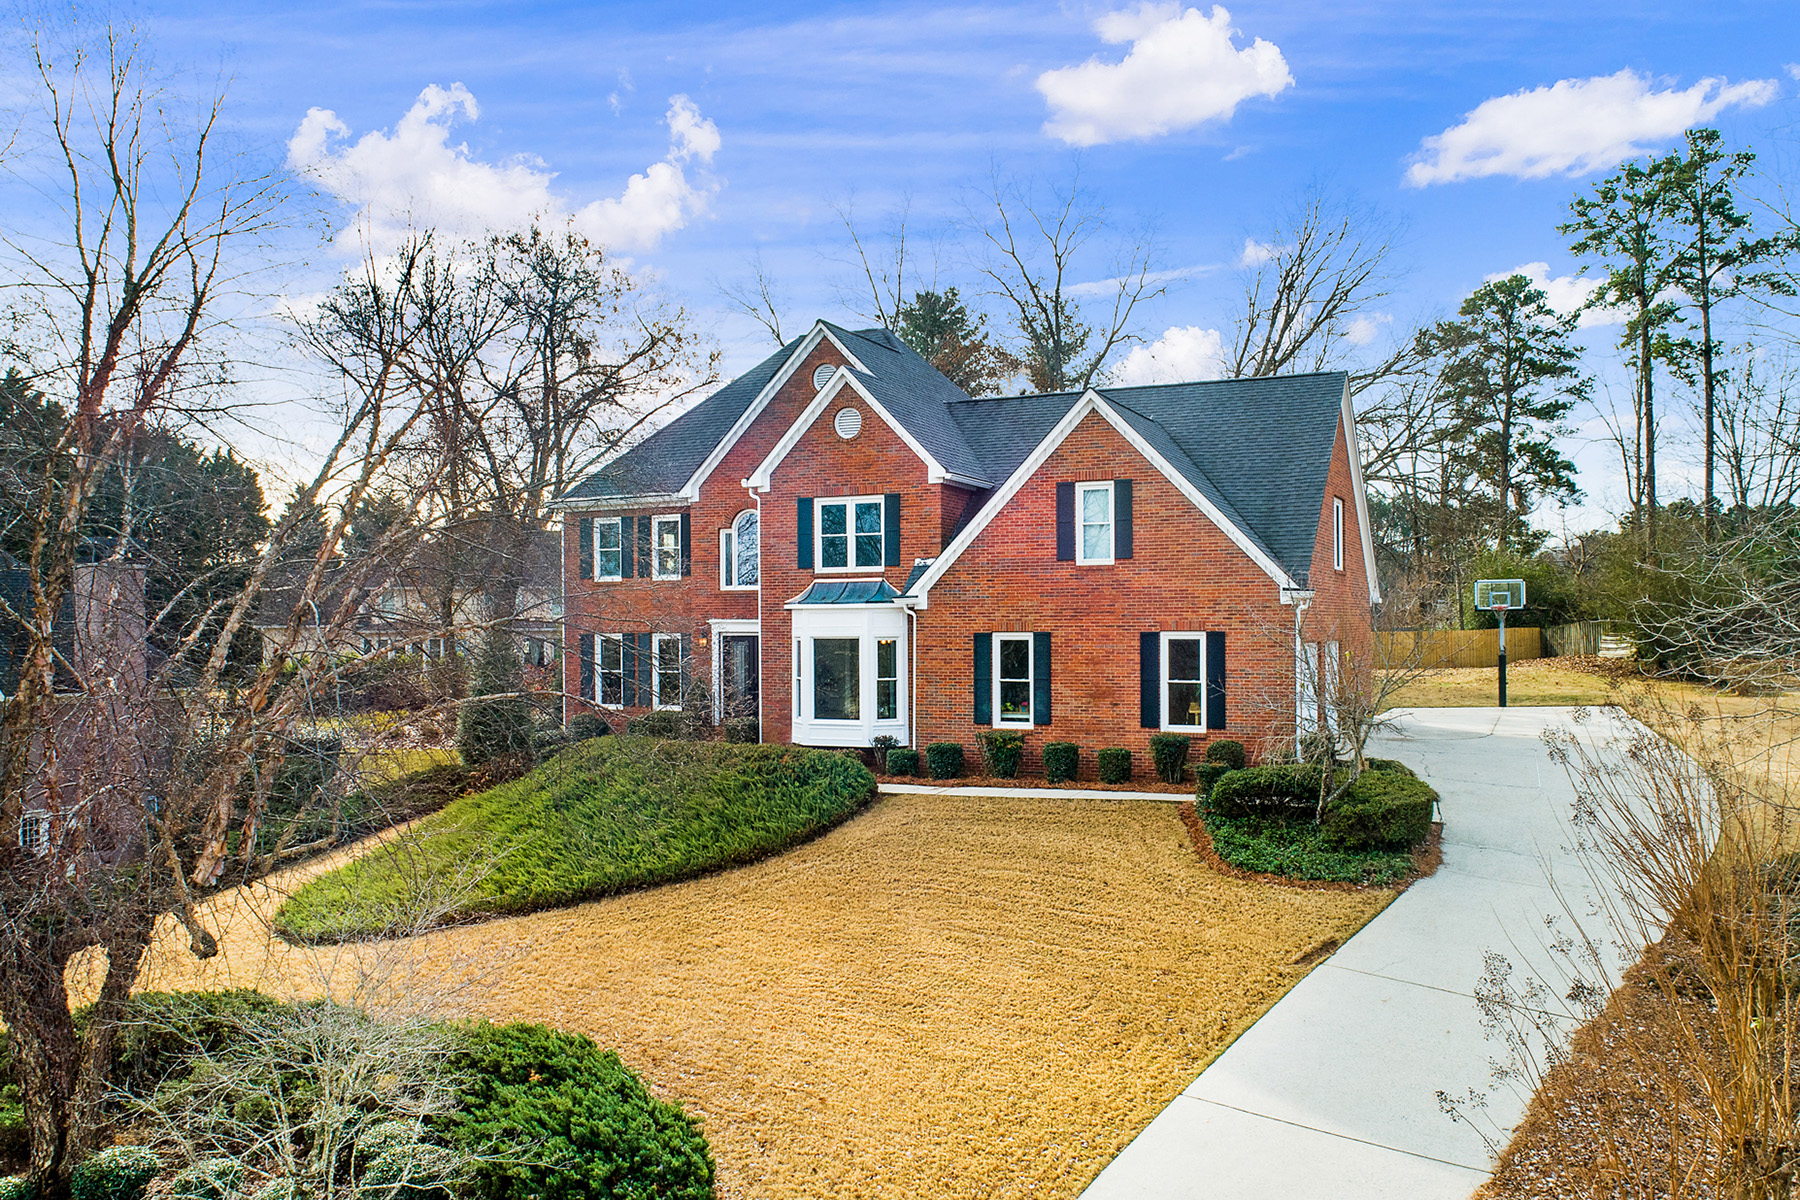 Gorgeous Executive Home In Sought After Roswell Swim and Tennis Community! 520 Wexford Hollow Run Roswell, Georgia 30075 Stati Uniti